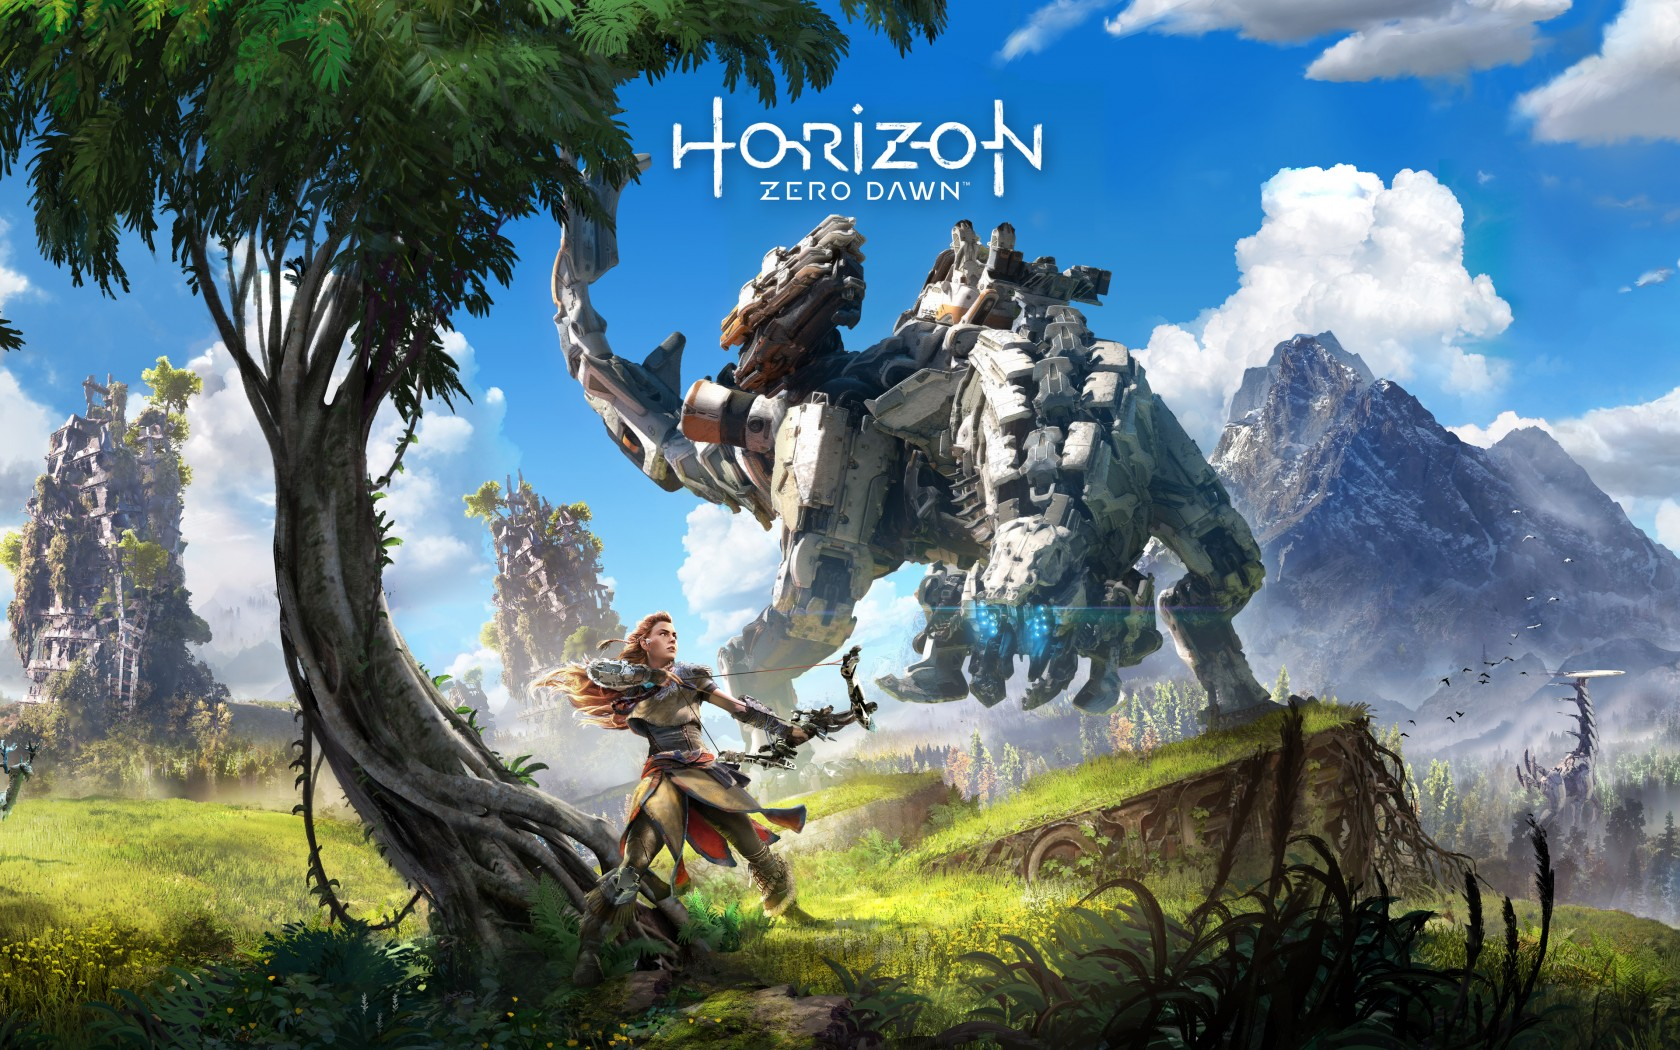 3d Cute Wallpapers Download Horizon Zero Dawn 4k 8k Wallpapers Hd Wallpapers Id 20361